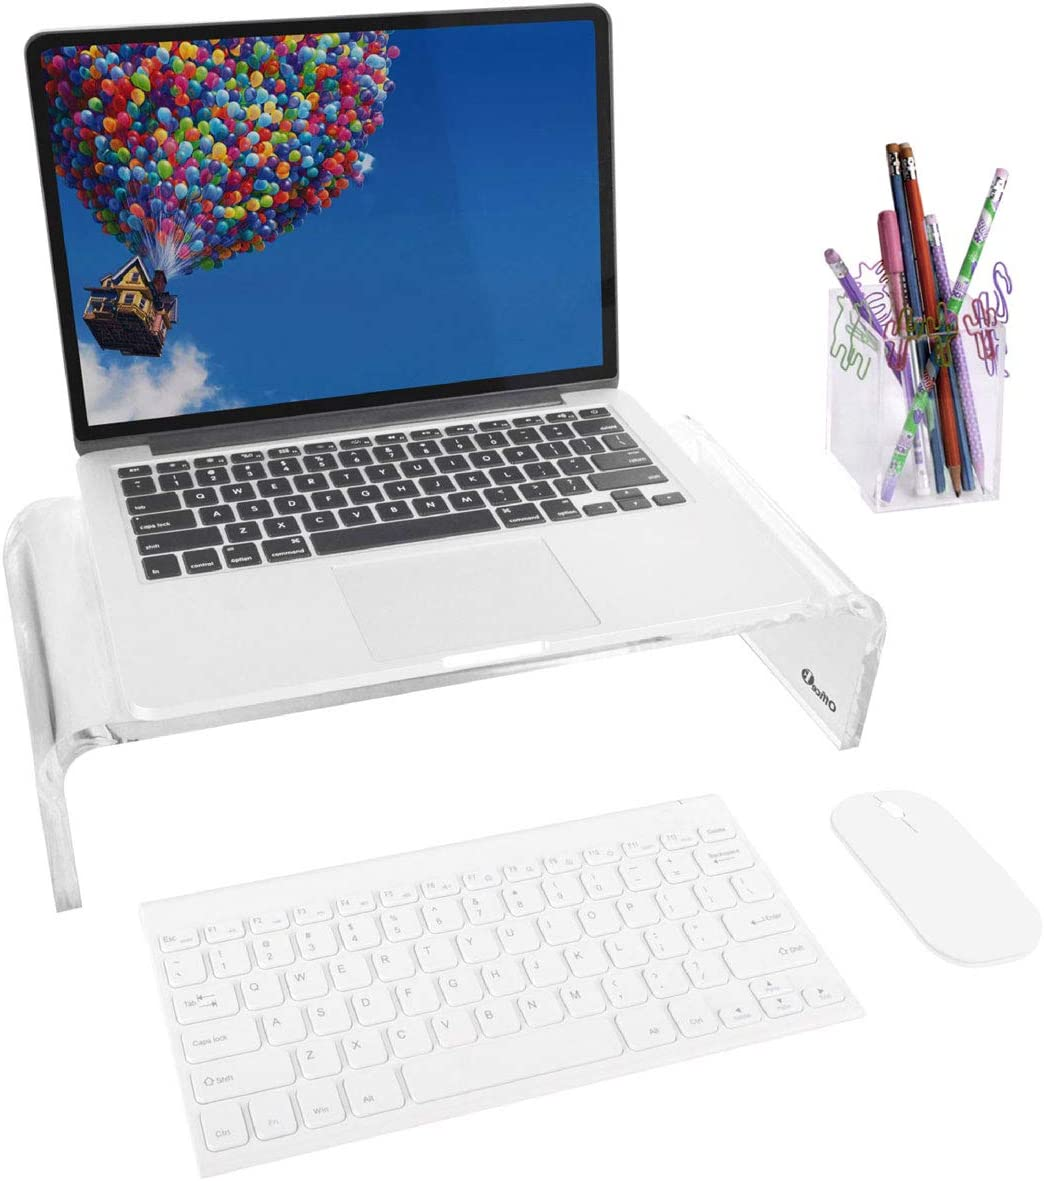 OFFICE1ST Acrylic Monitor Stand Monitor Riser Computer Stand Keyboard Storage Support Laptop Riser, Printer, TV Screen Stand, Free Pencil Holder(Small)